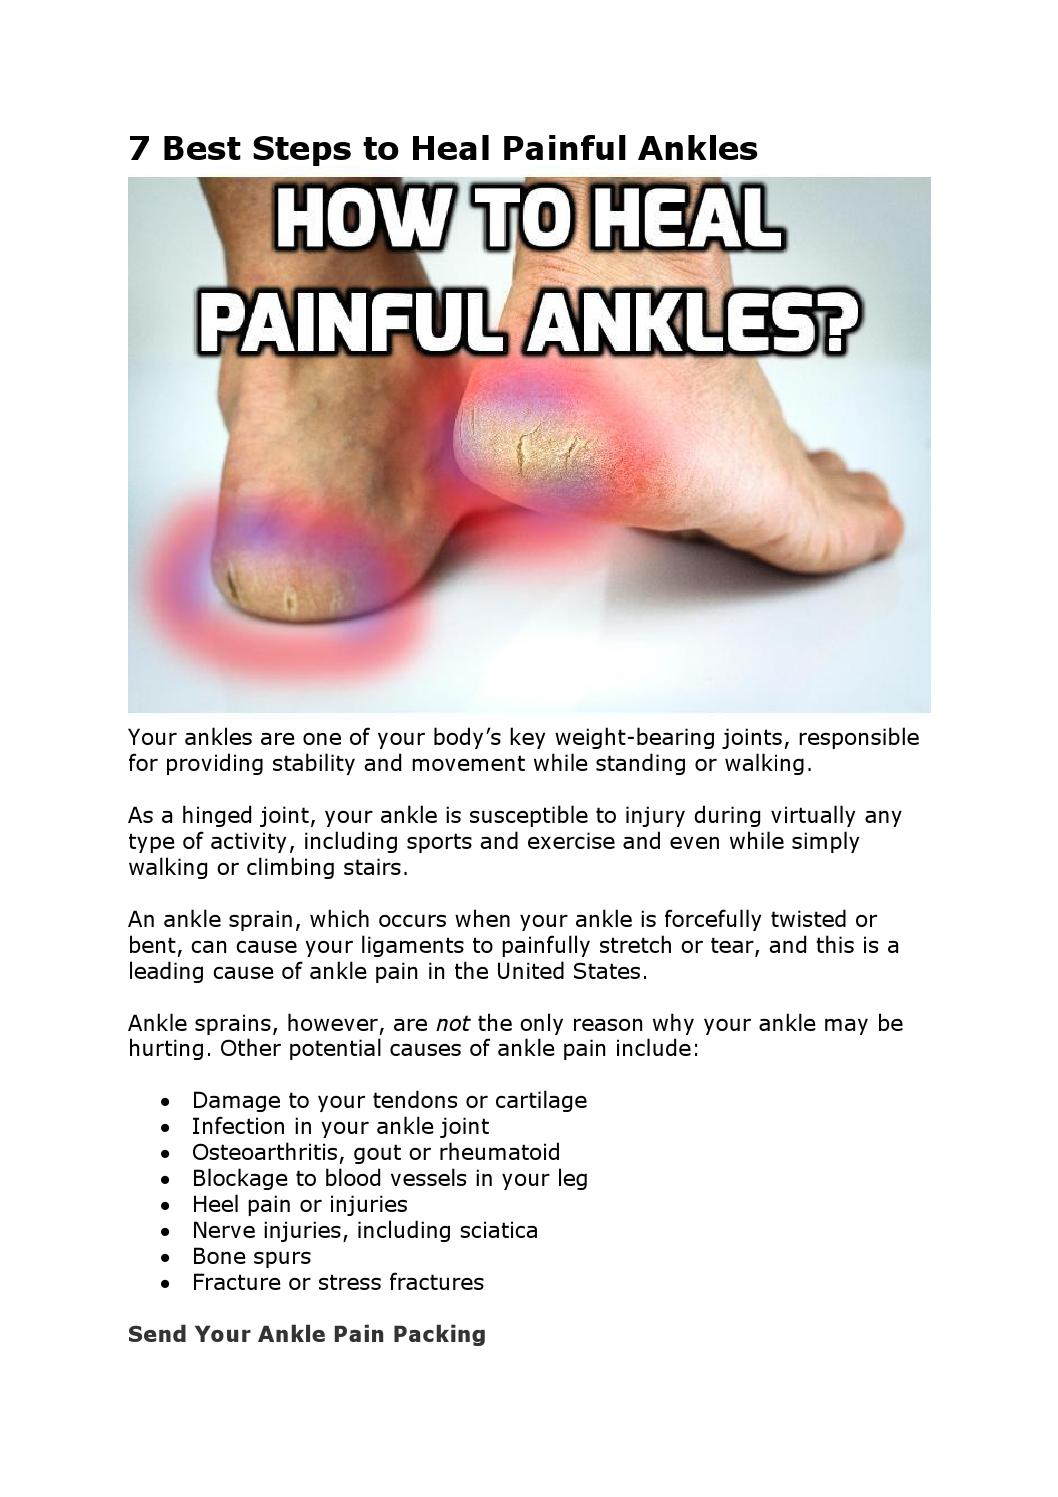 7 best steps to heal painful ankles by how2stayyoung